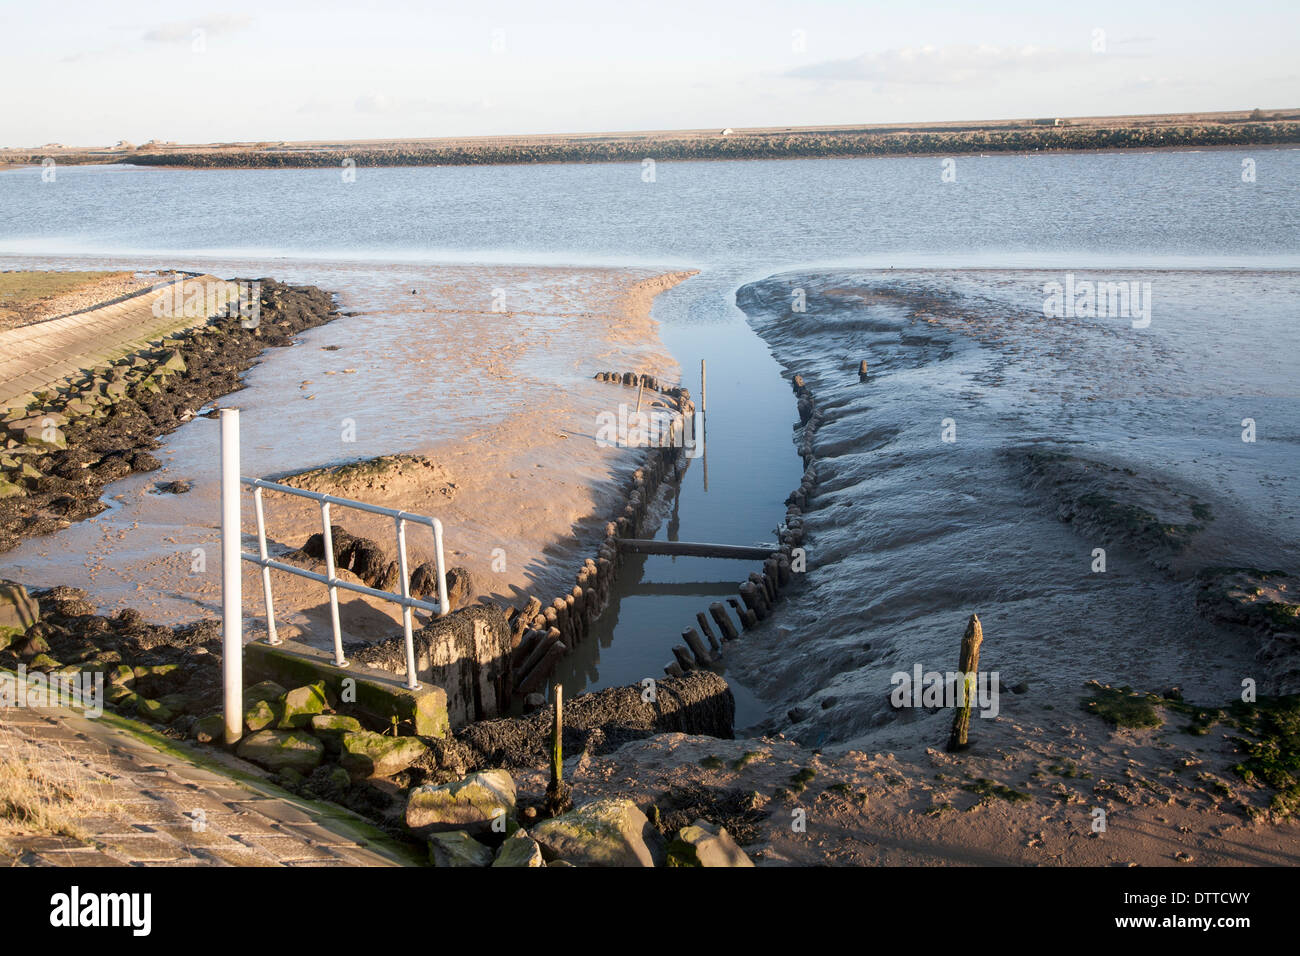 Drainage sluice draining marshland water into the River Ore from Gedgrave marshes, near Orford, Suffolk, England - Stock Image